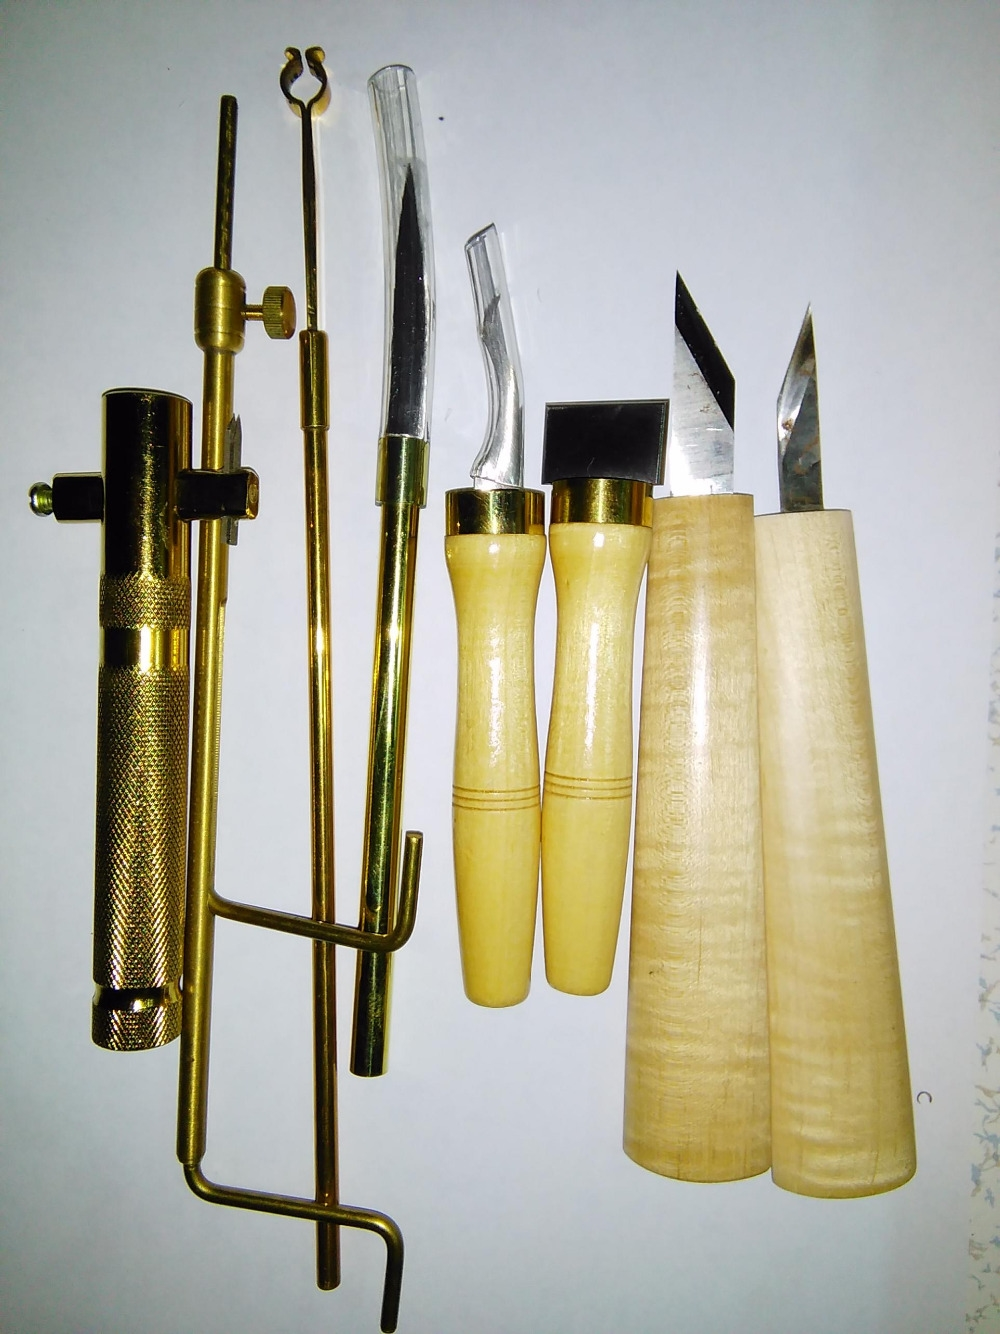 86.99$  Buy here - http://ailao.worlditems.win/all/product.php?id=32693033658 - 8 PCs Luthier tools for Cello use including cutter repair knife scraper inlay tool post gauge purfling knife etc